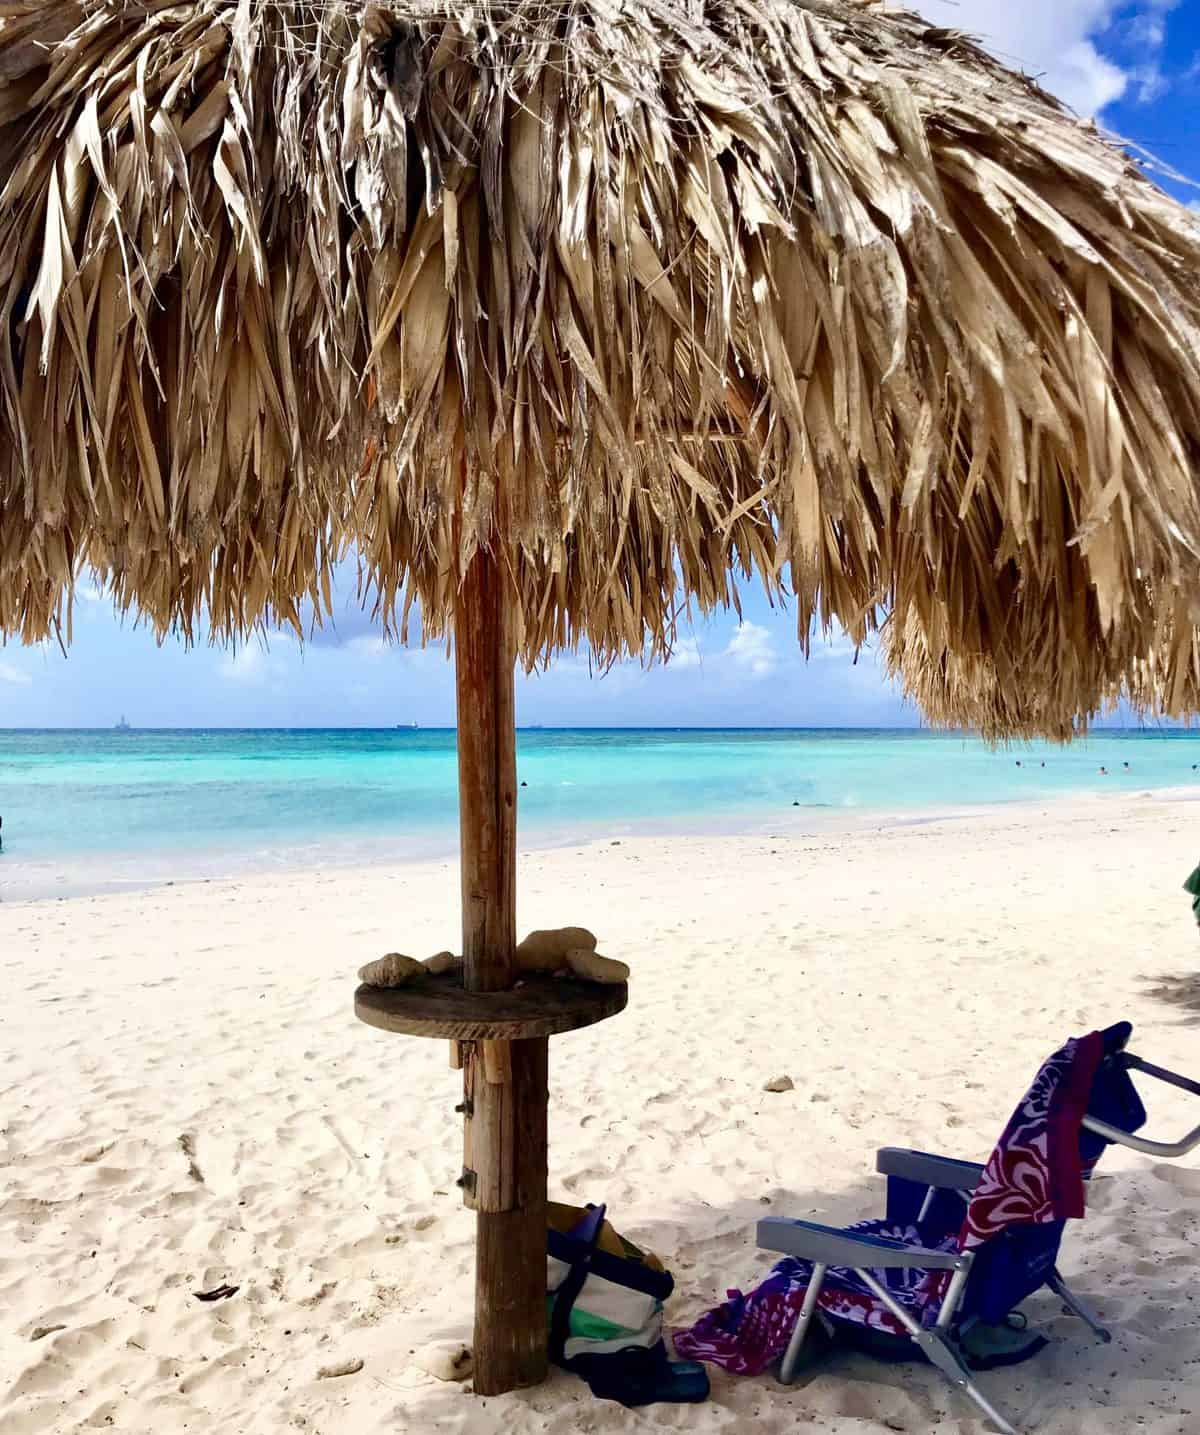 What to do in Aruba - chill on the beach!